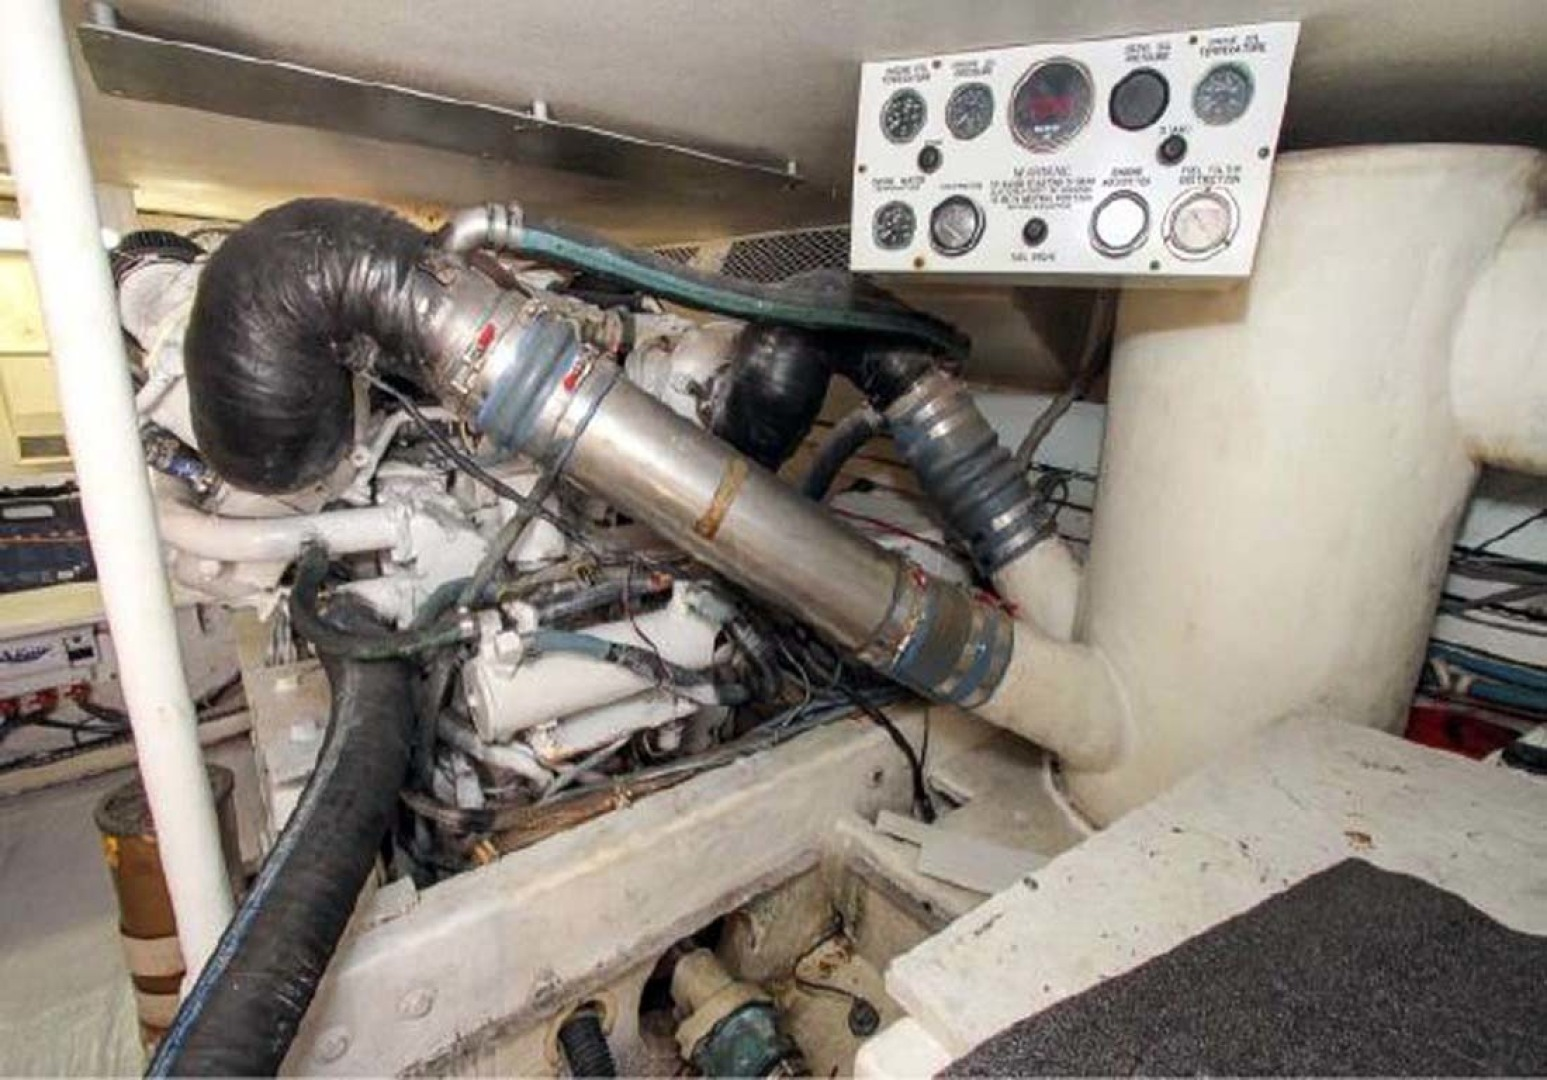 Viking-Convertible 1993-Out of Order Cape May-New Jersey-United States-Engine Room-1295376 | Thumbnail